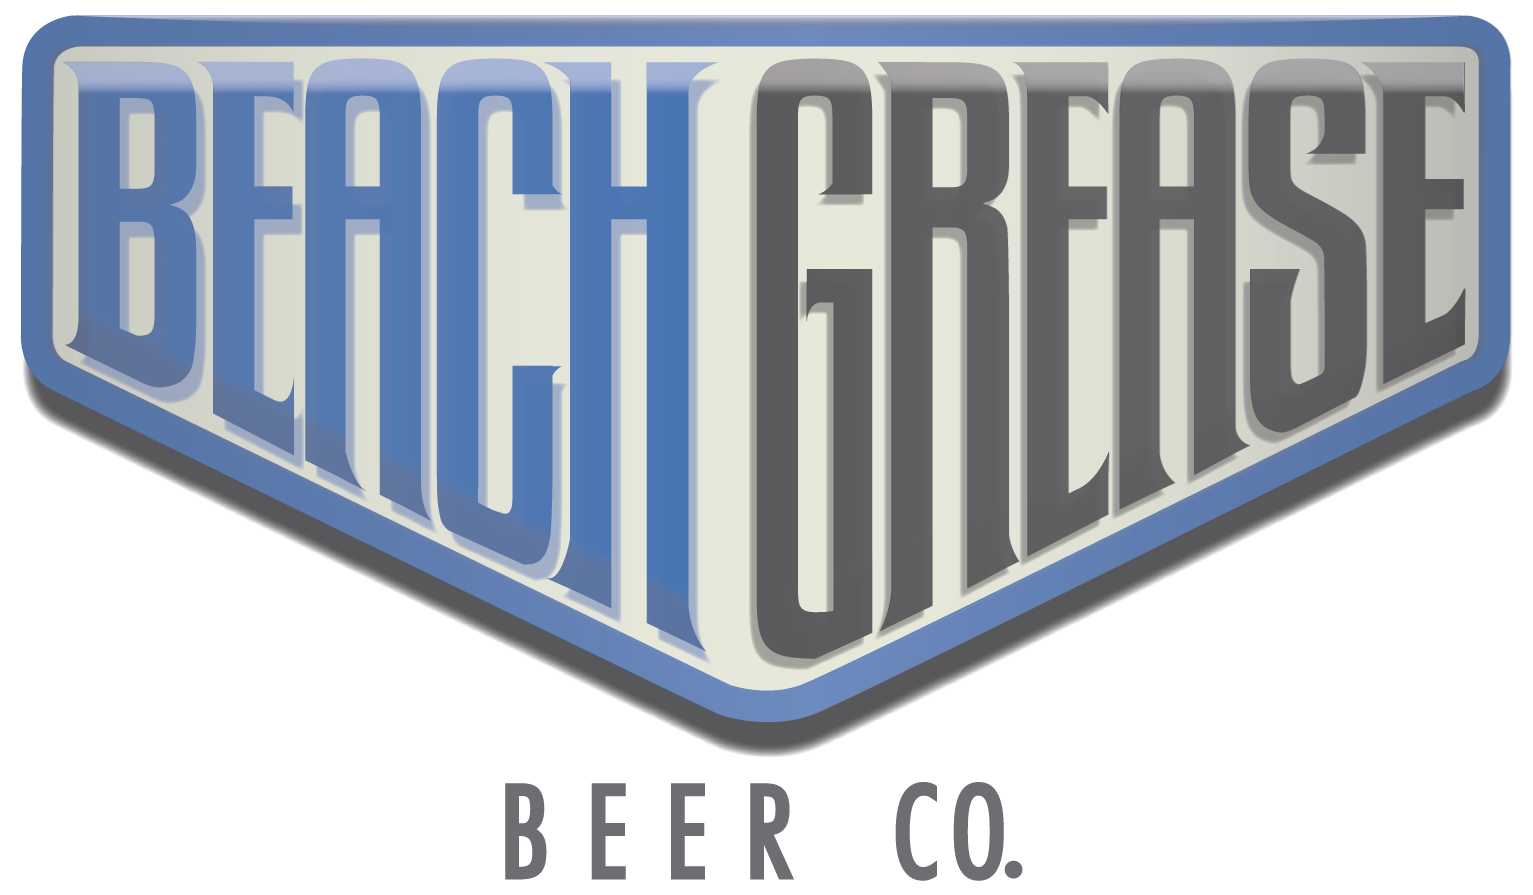 STYLED-logo-bgbc-beach-grese-beer-co.png